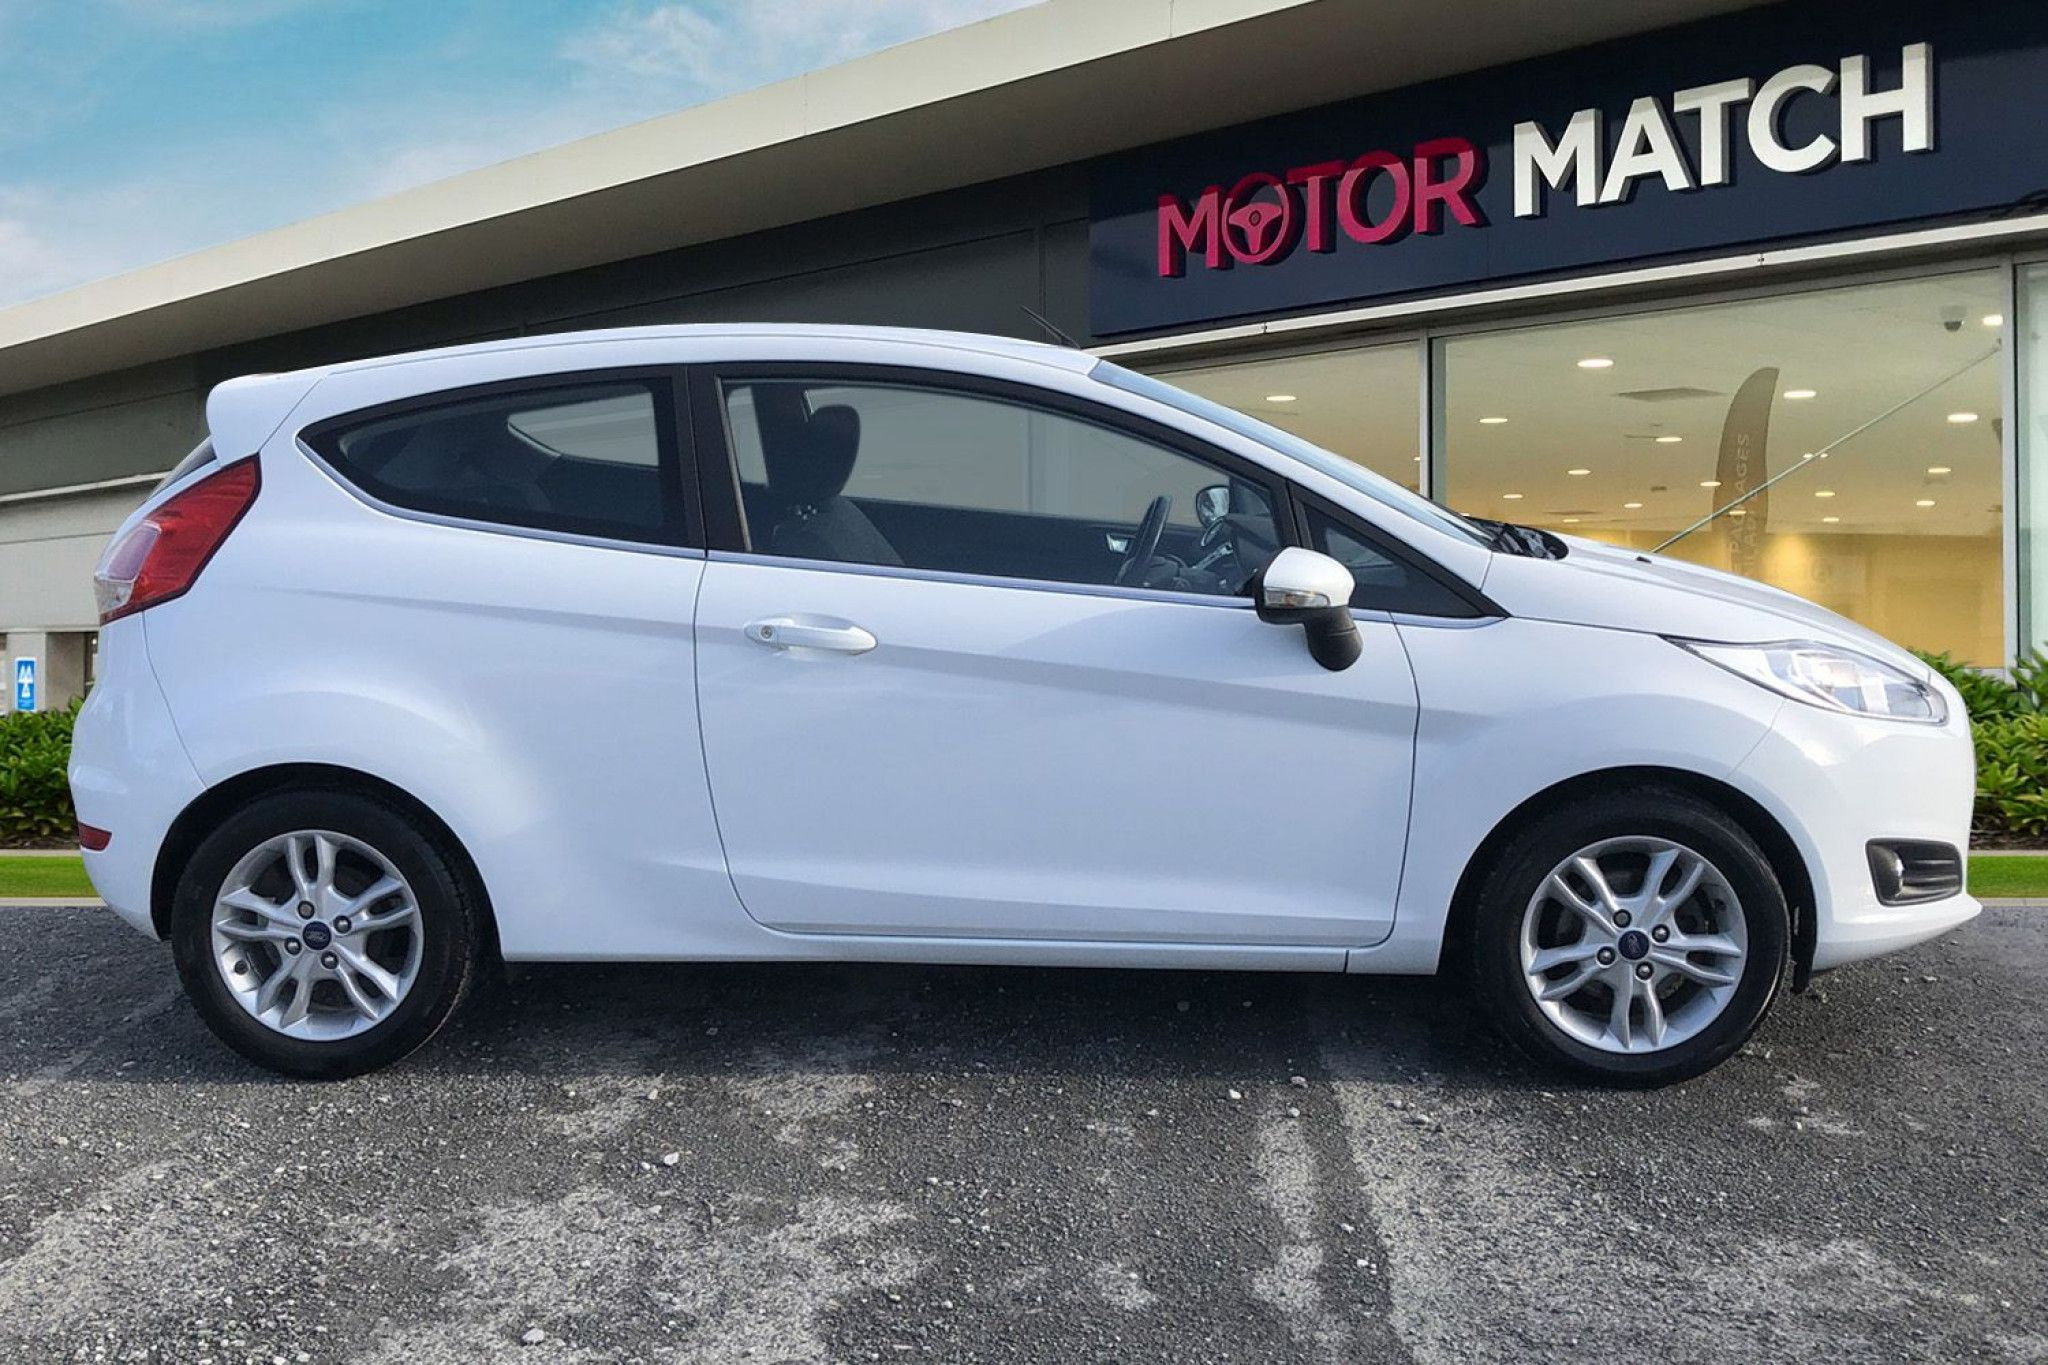 Ford Fiesta 1 0 Ecoboost Zetec 3dr In 2020 Ford Used Ford Cars